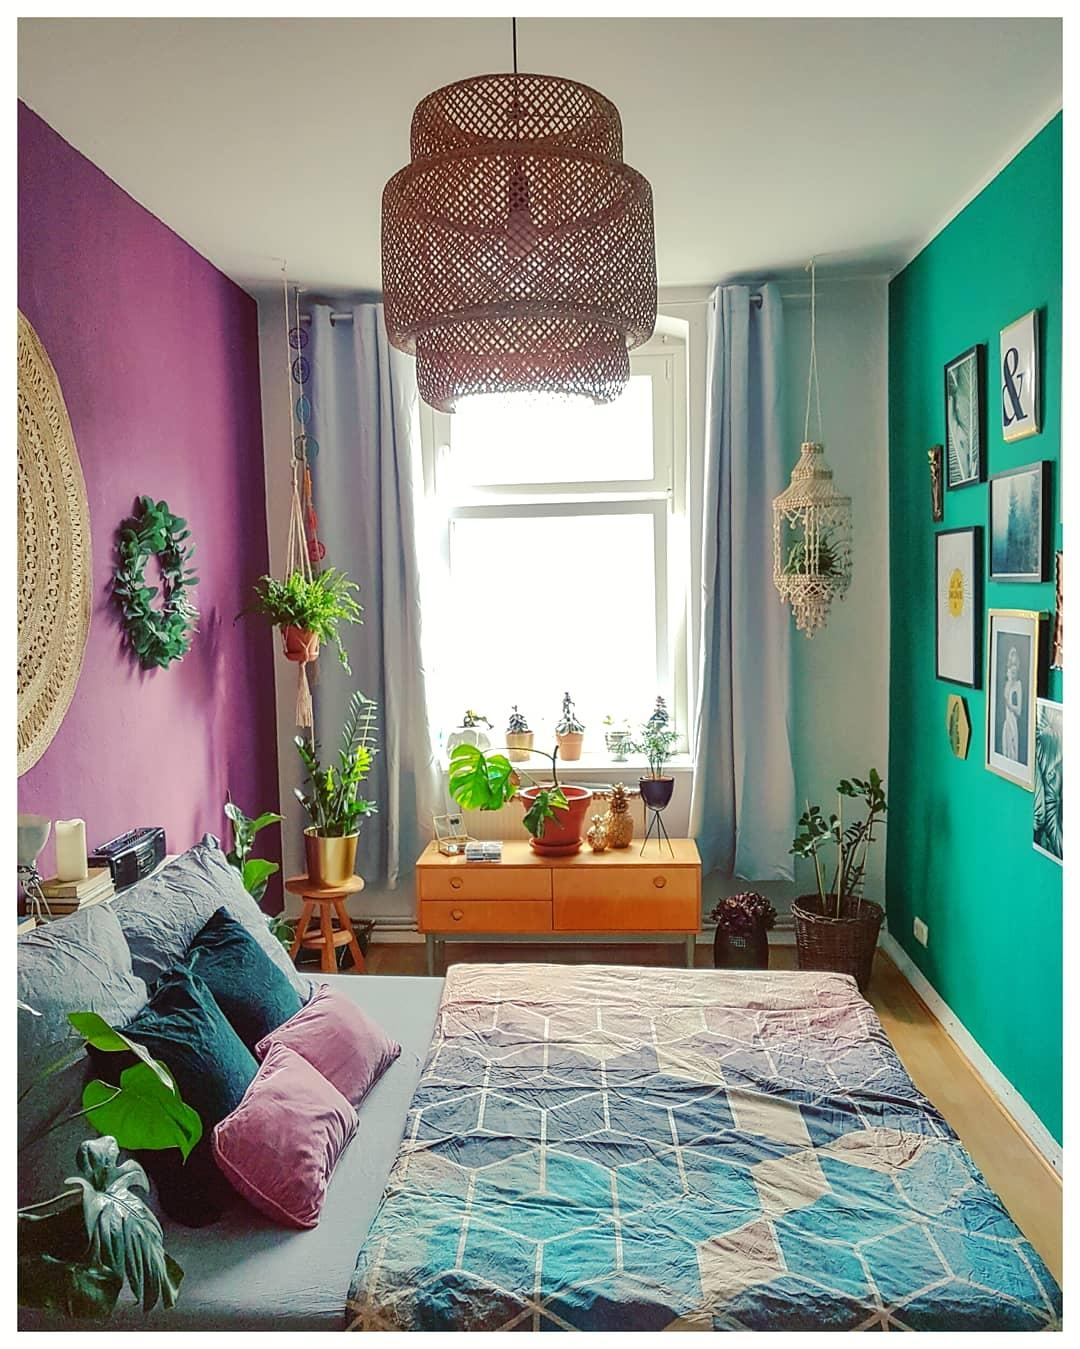 Bett livingchallenge bedroom colorfulhome boholiving  45dad679 e14e 452a 9c7c 535e9216a17c